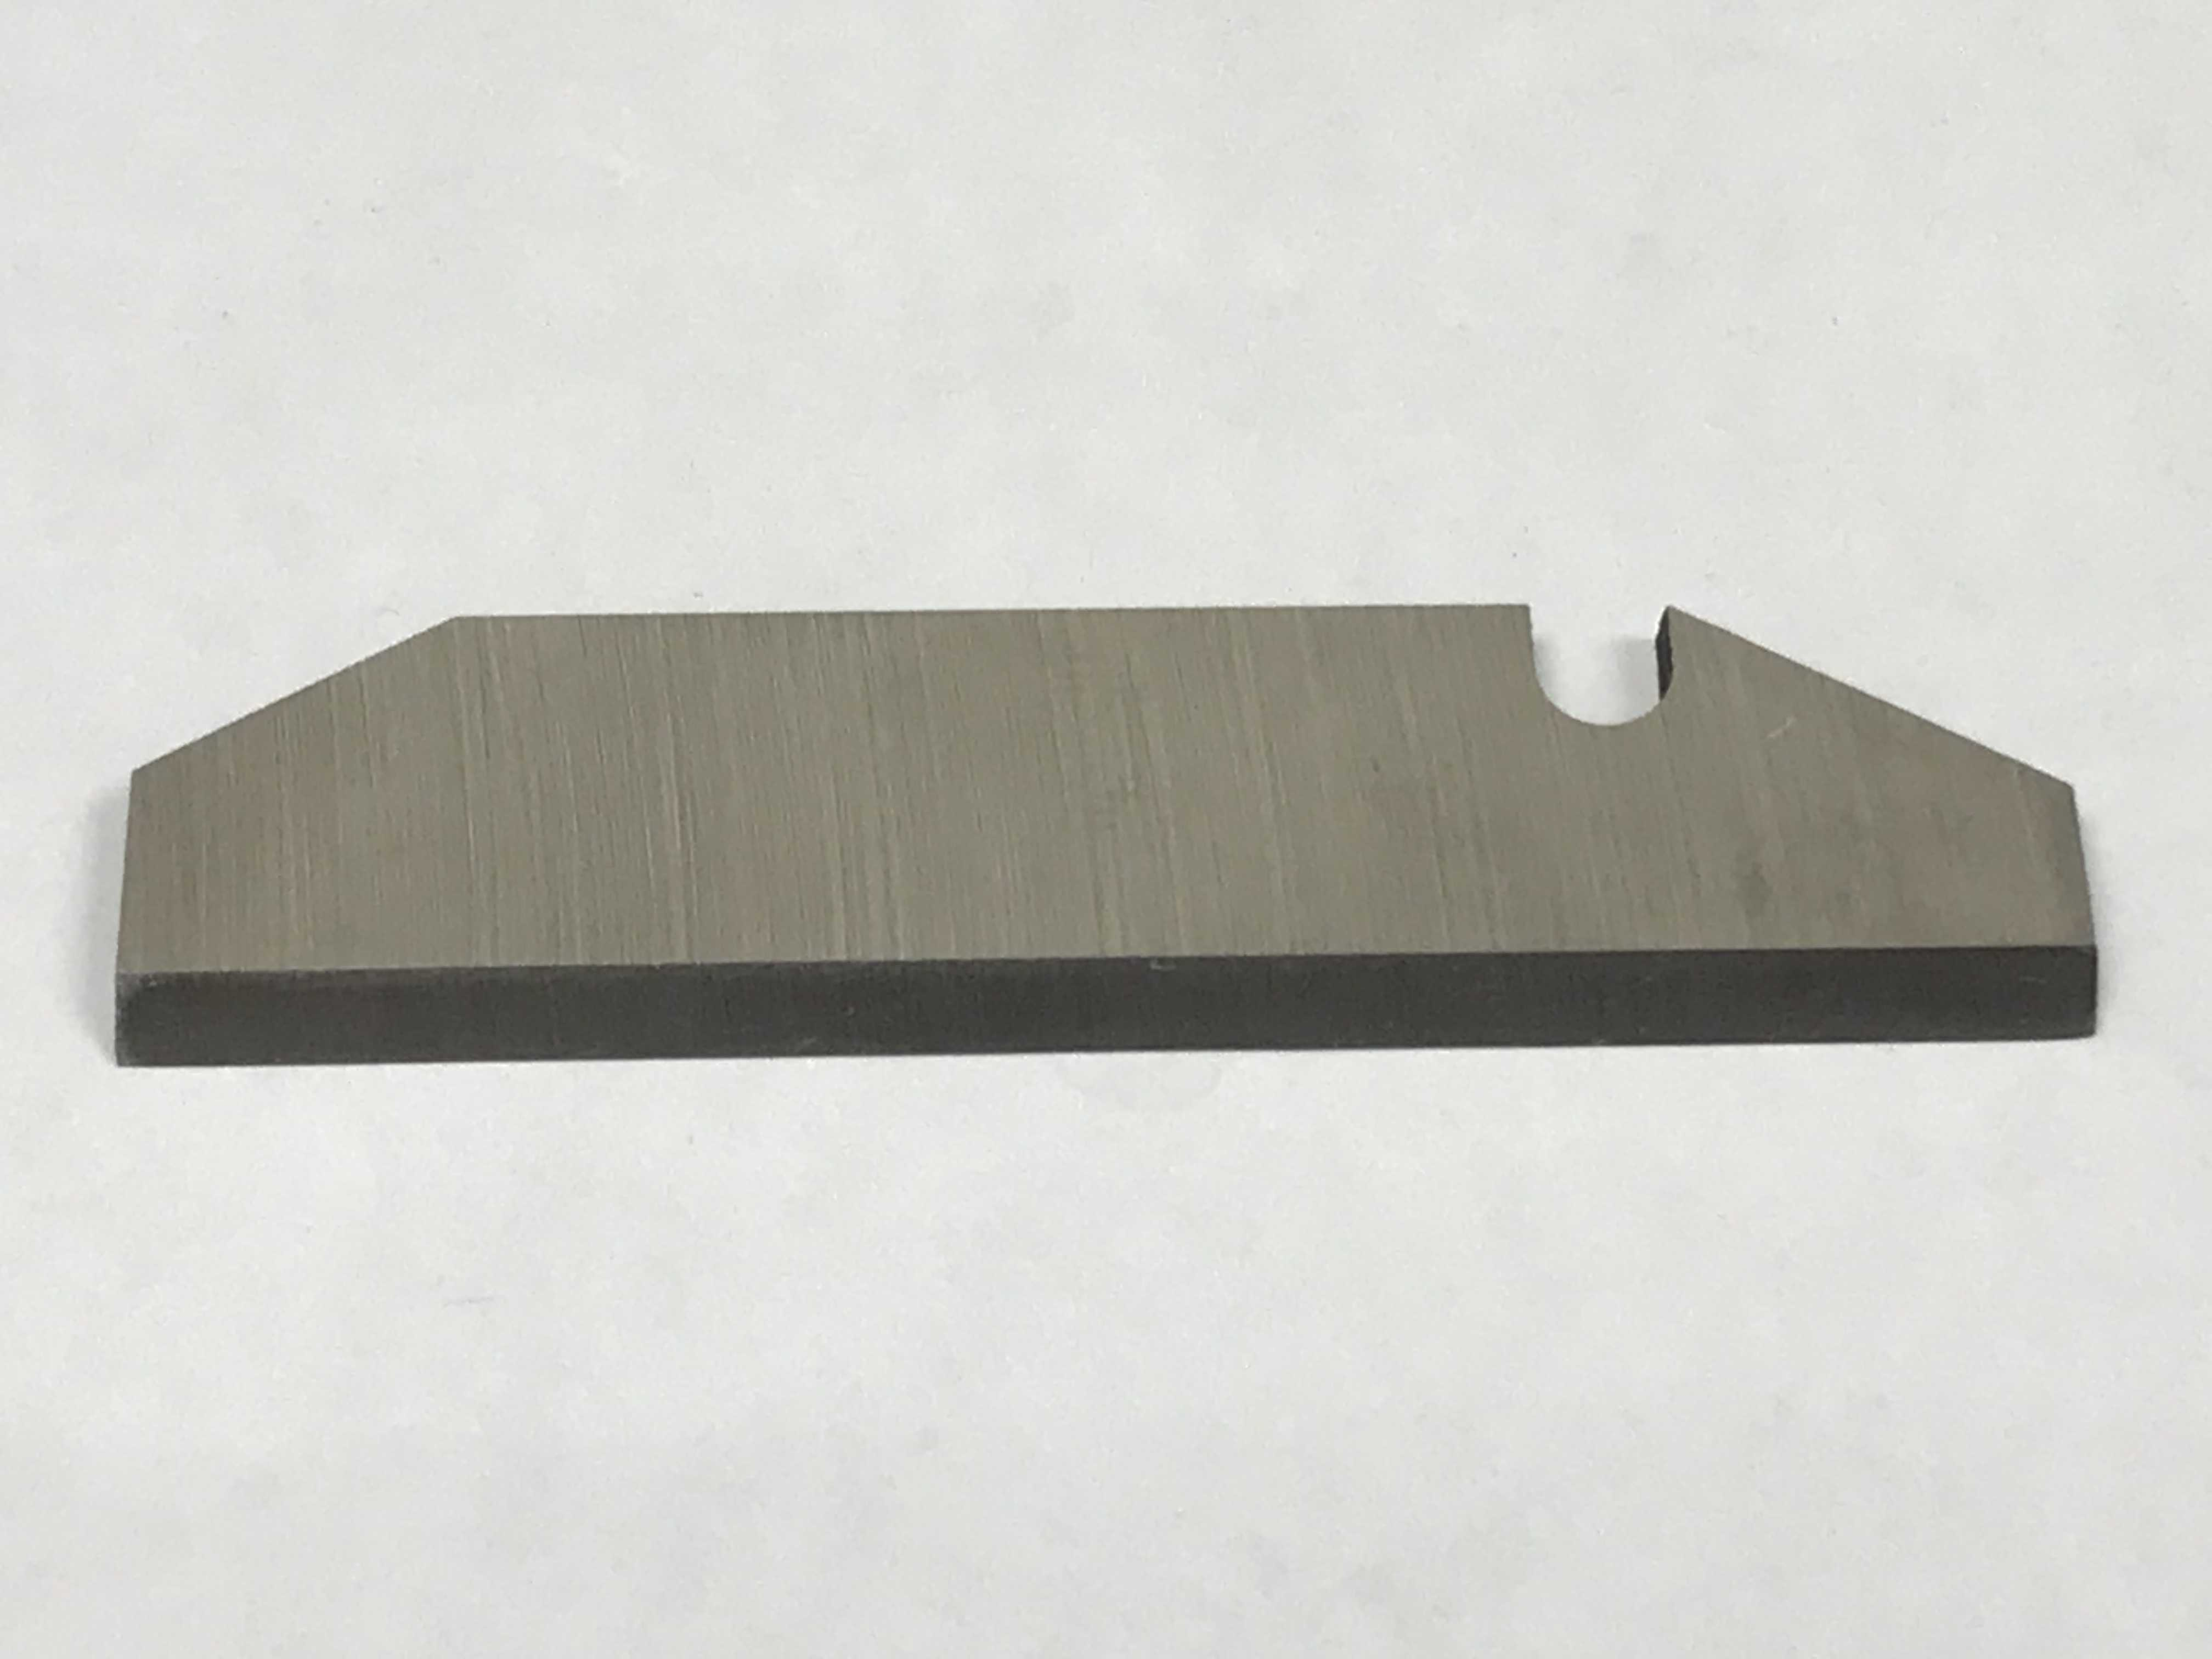 OEM Weiler stainless steel replacement meat grinder blade